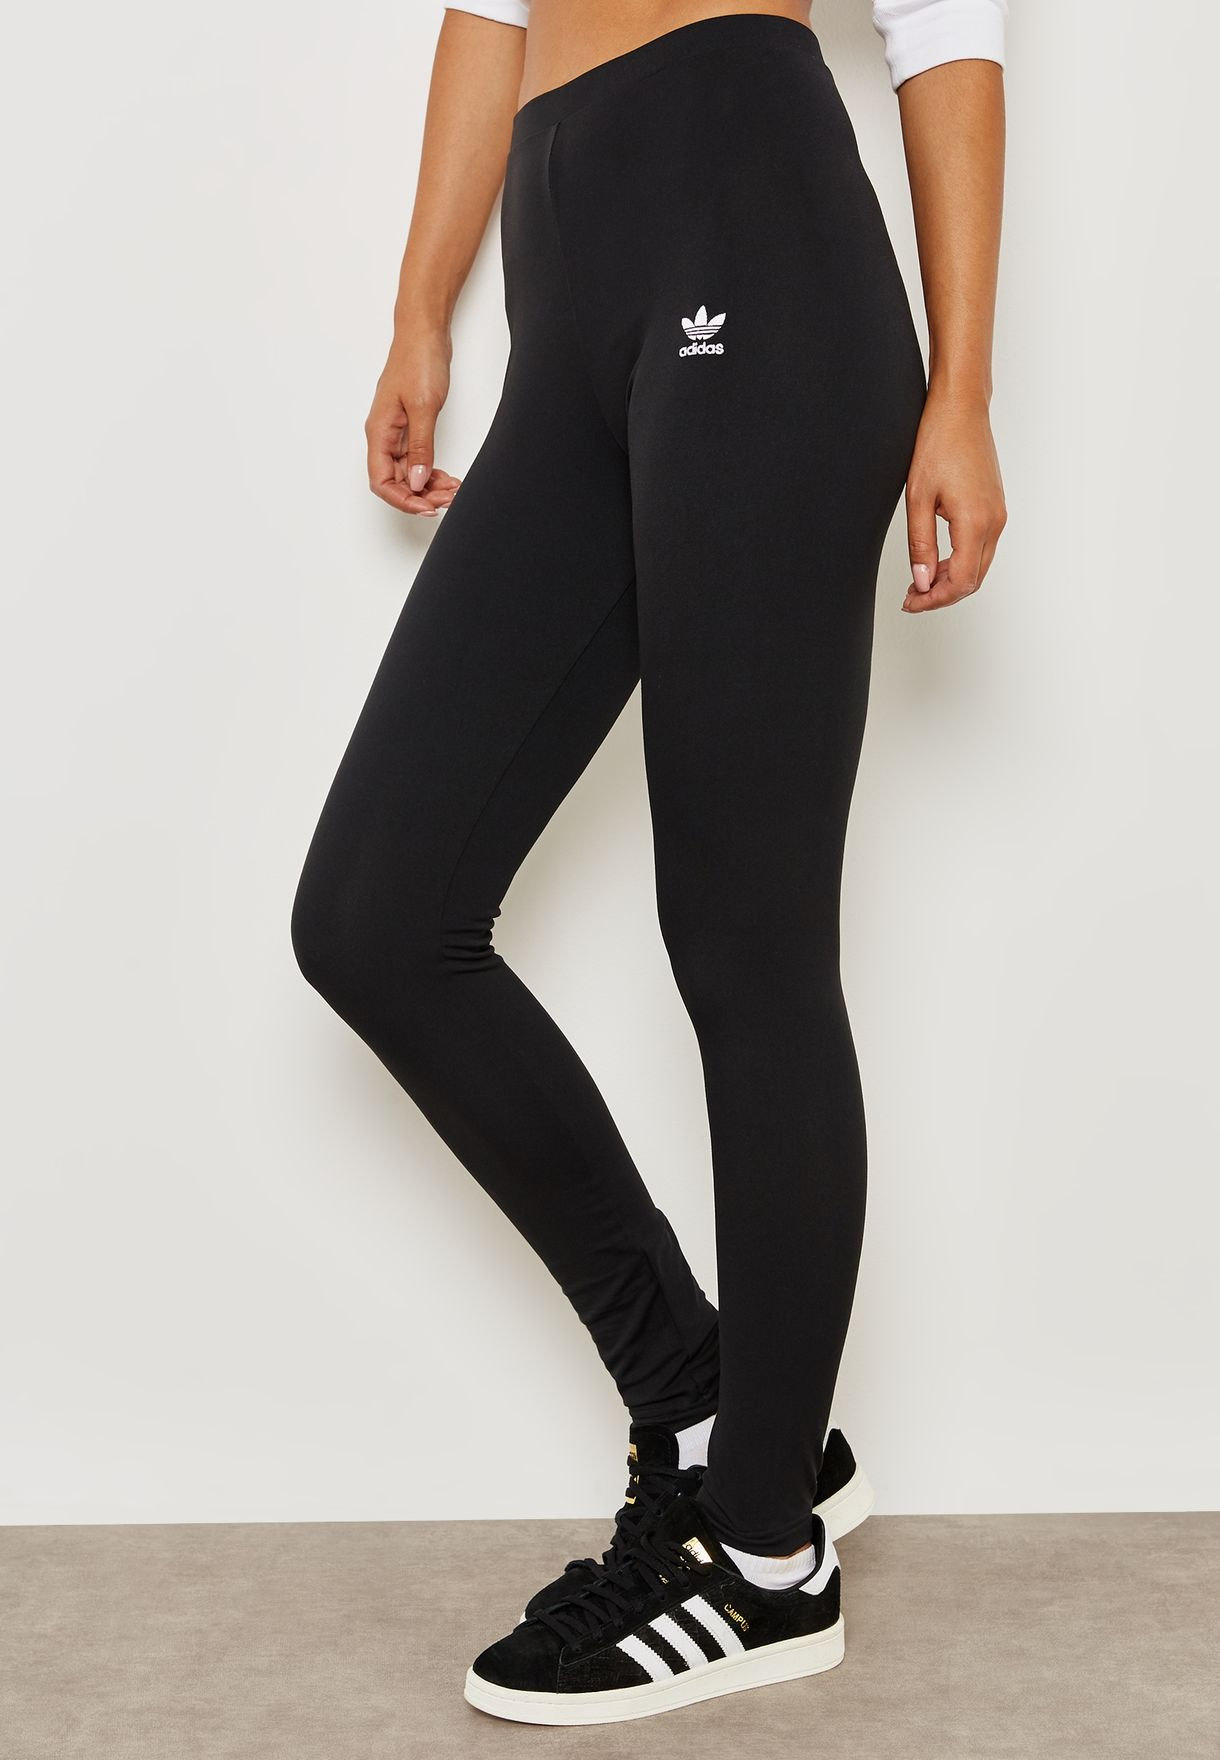 f6e89afaacb5 Shop adidas Originals black Styling Complement Leggings DH2754 for ...